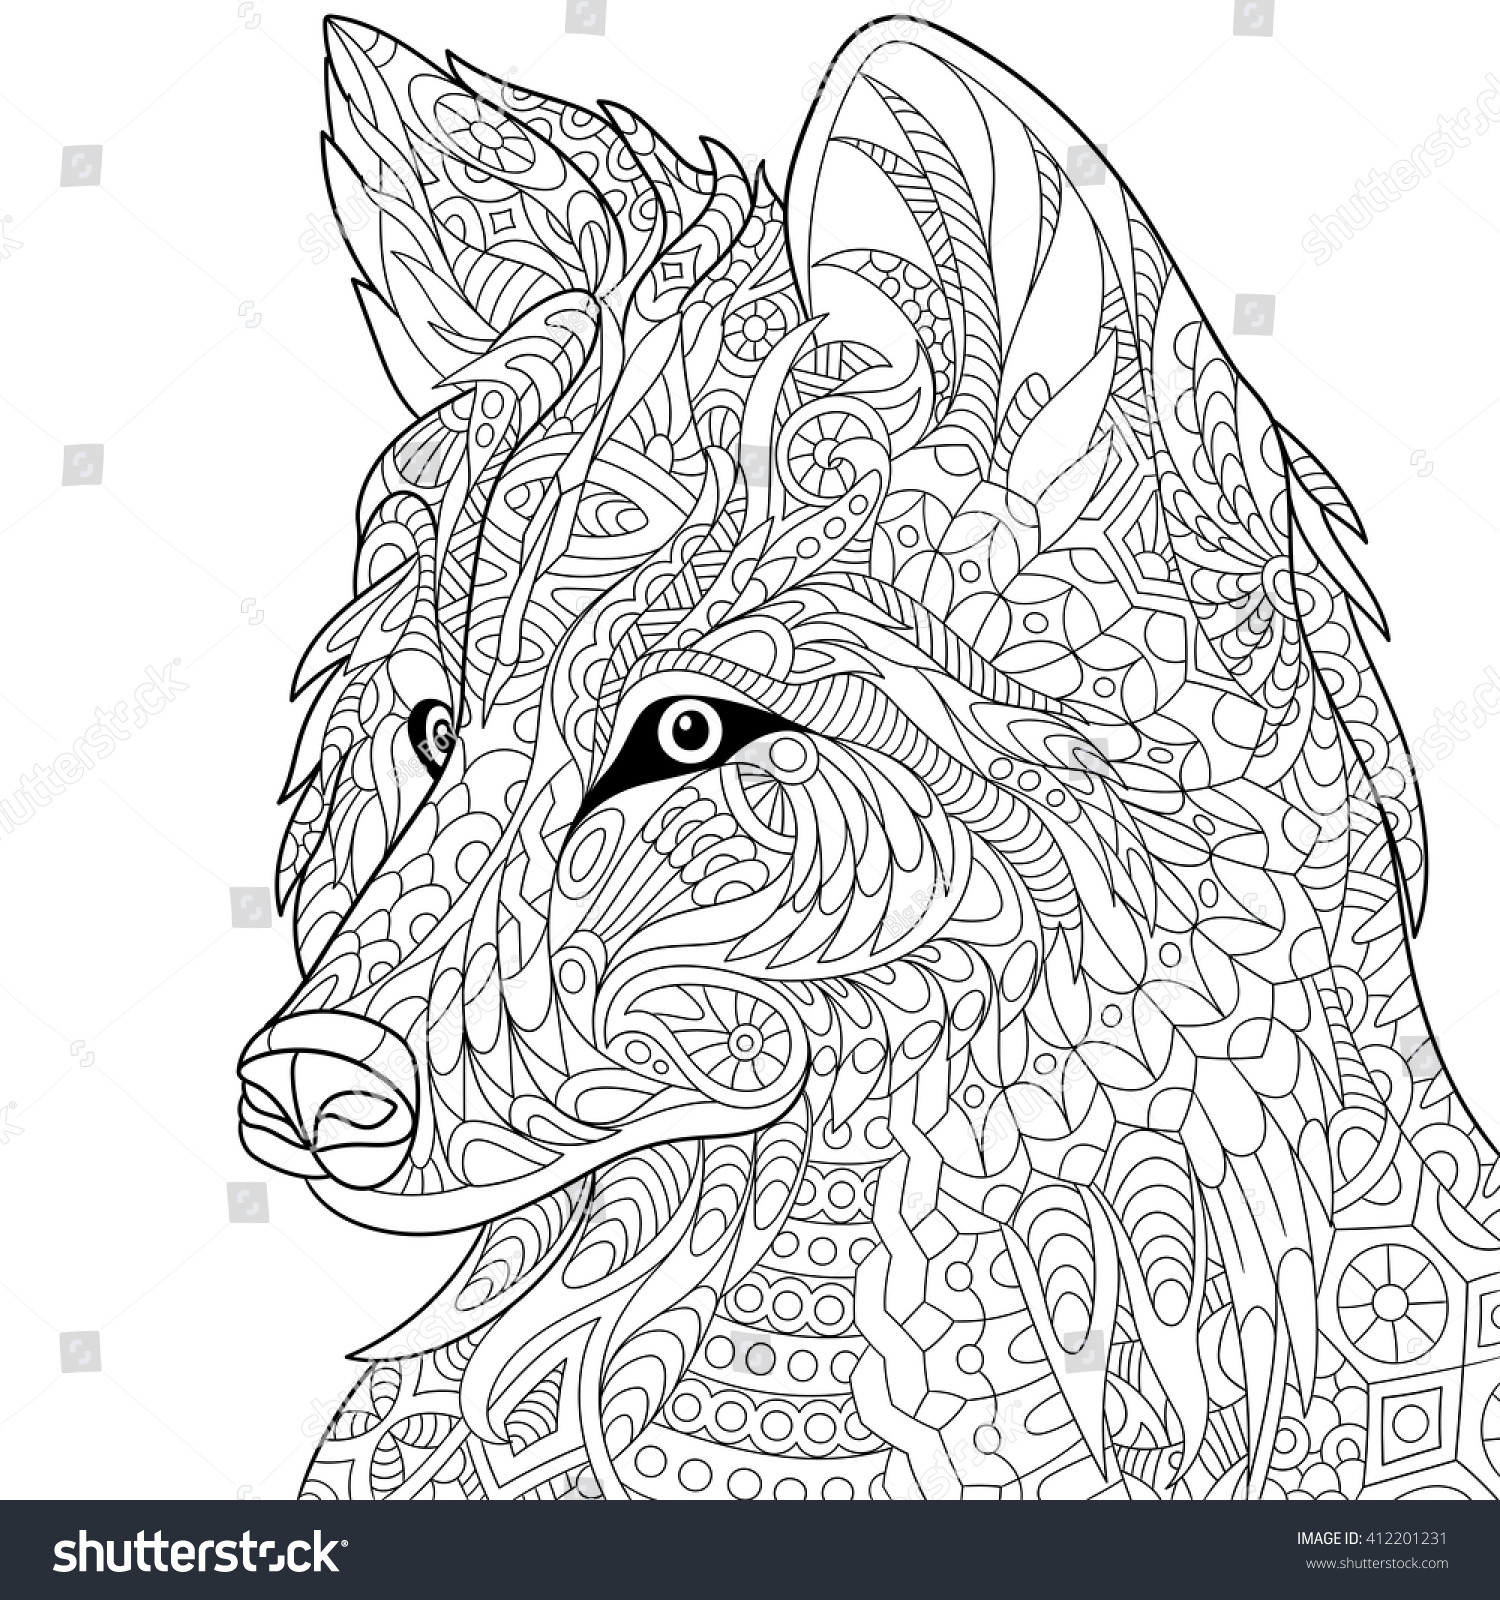 Coloring pages for adults wolf - Zentangle Stylized Cartoon Wolf Isolated On White Background Hand Drawn Sketch For Adult Antistress